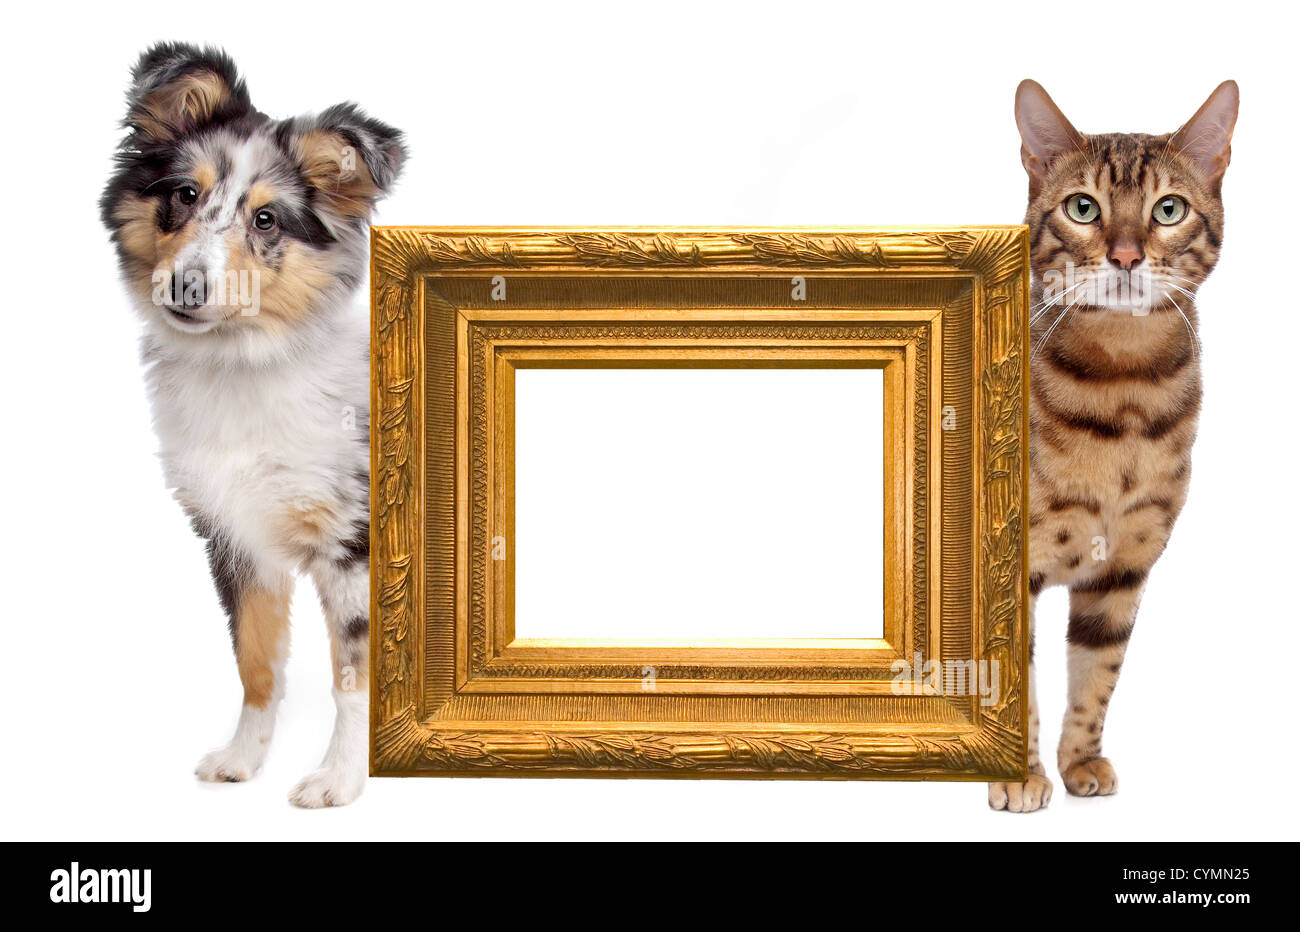 Empty Golden Picture Frame Stockfotos & Empty Golden Picture Frame ...